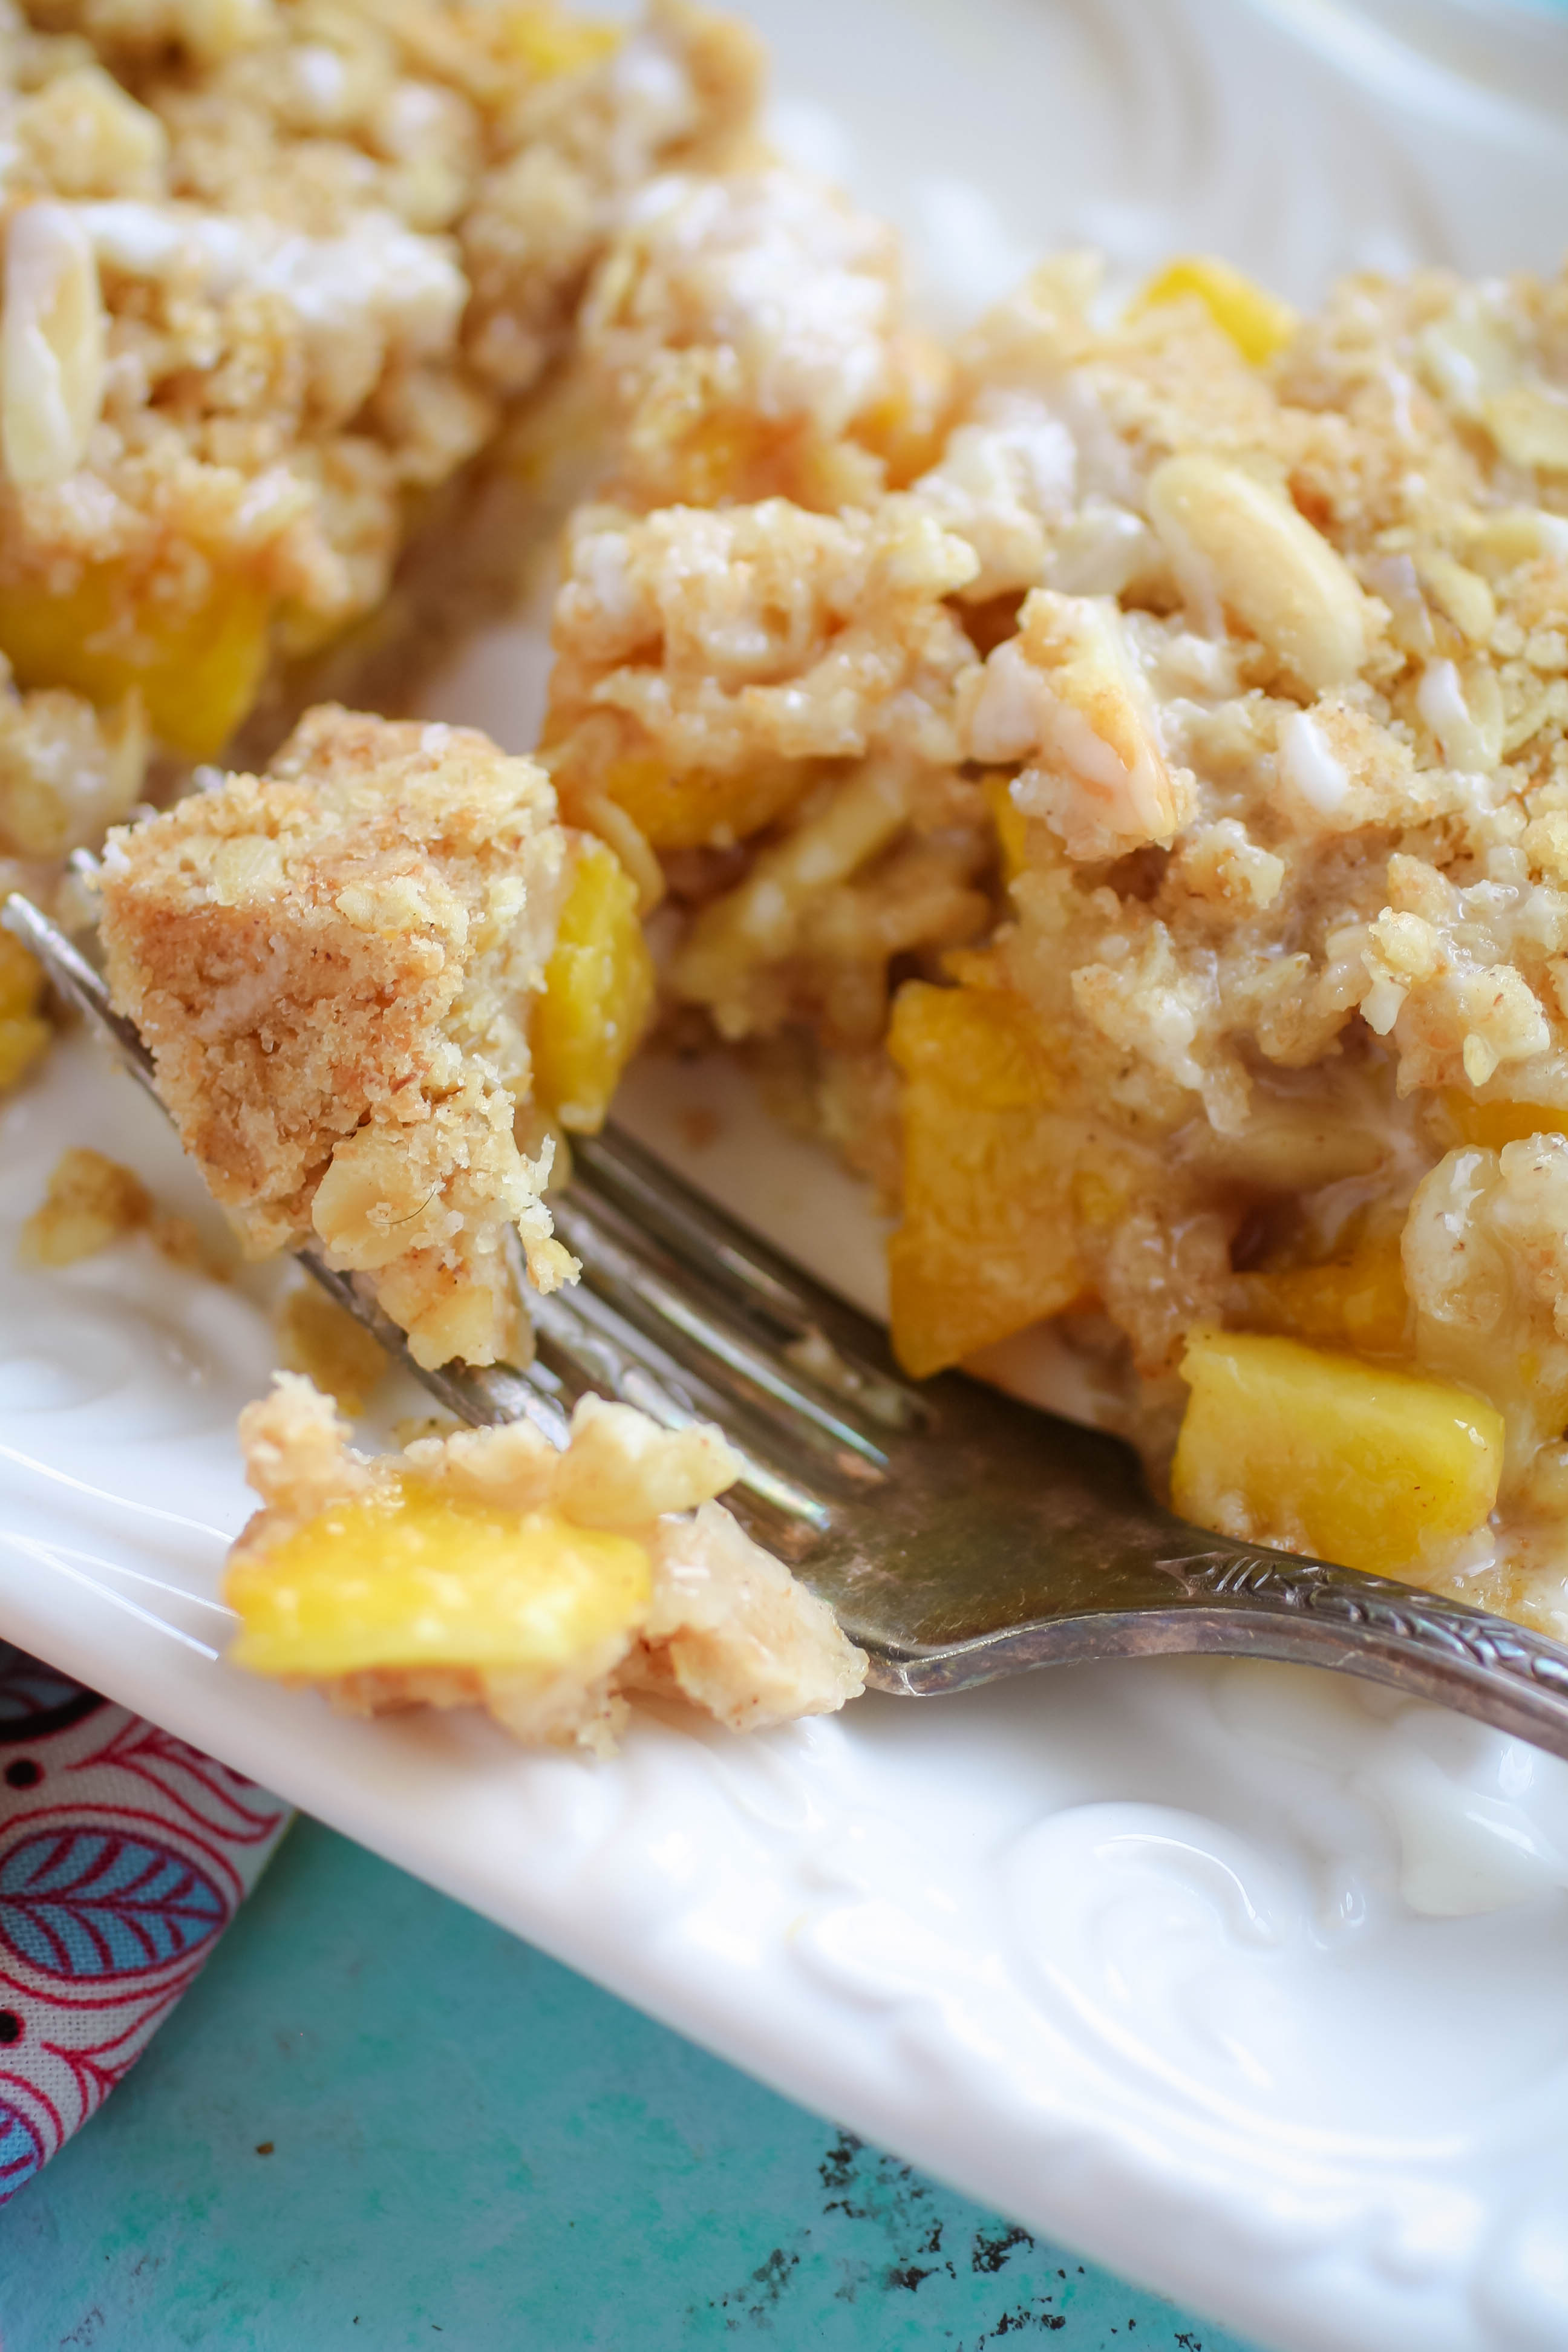 Peach Crumble Squares with Bourbon Glaze are a summertime treat to dig into. Enjoy these Peach Crumble Squares with Bourbon Glaze this summer while peaches are in season.